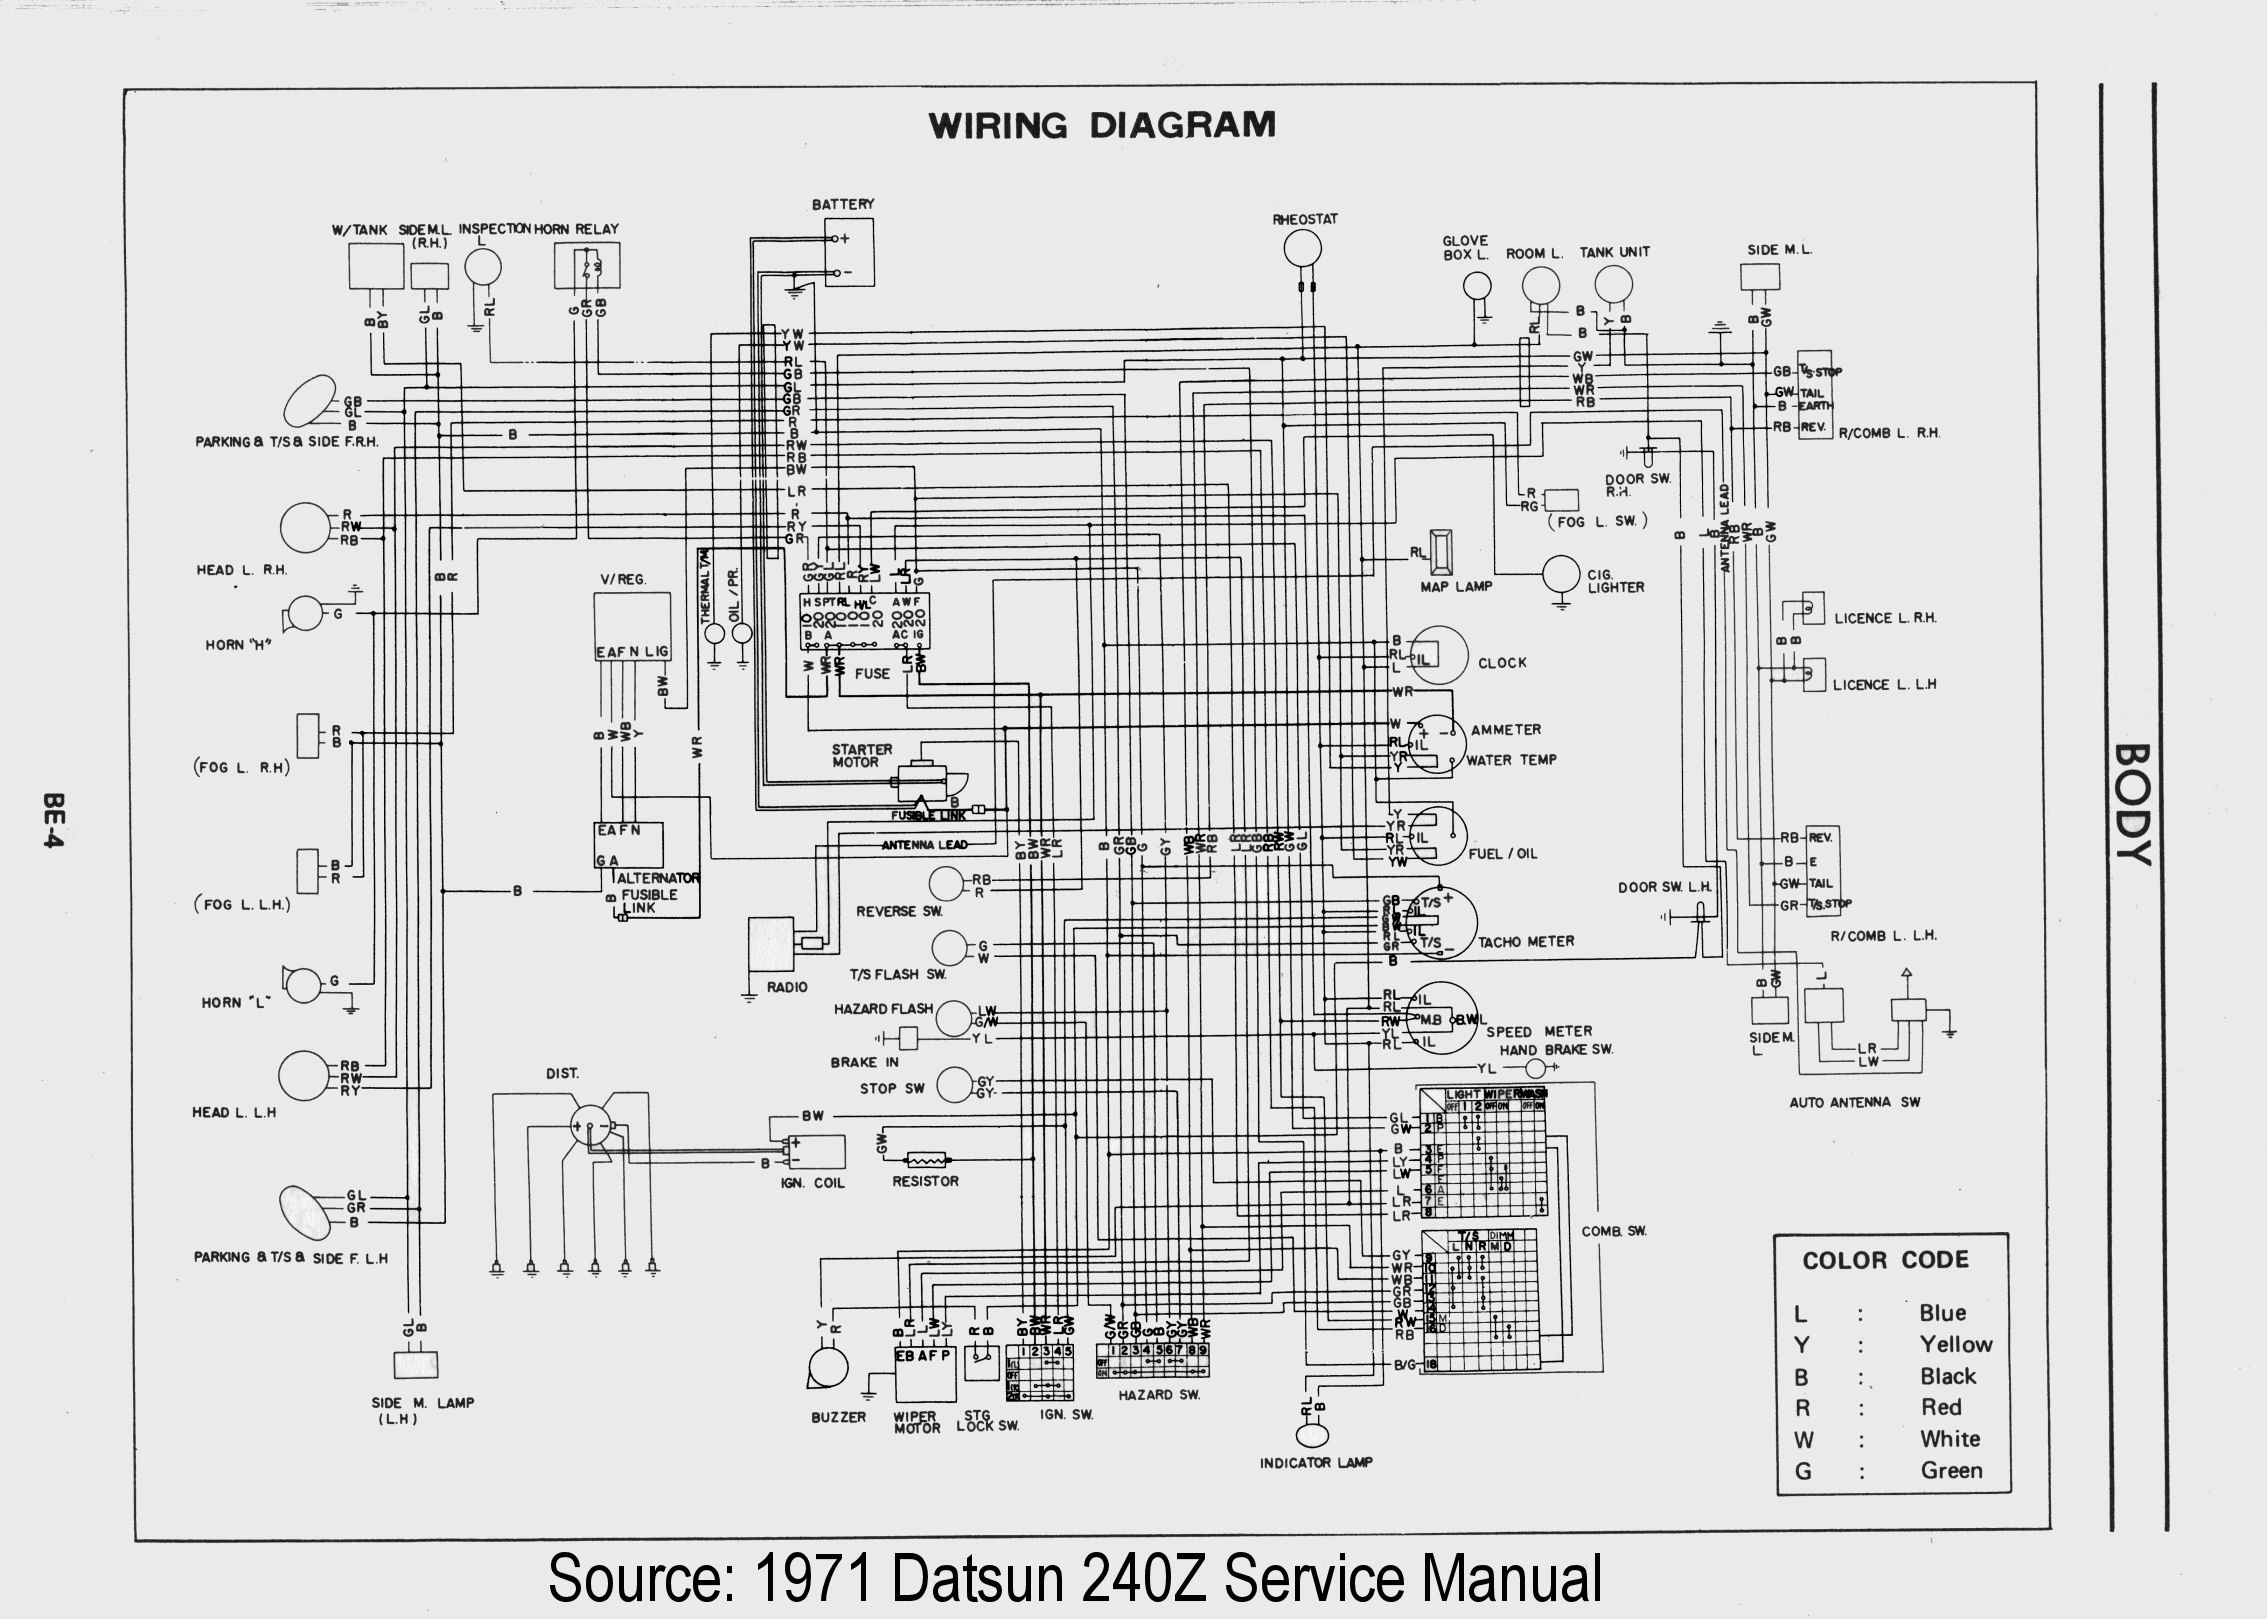 Generic Wiring Troubleshooting Checklist Woodworkerb. 1971 Datsun 240z Wiring Diagram. Wiring. A Car Fuse Box Wiring Diagram At Scoala.co